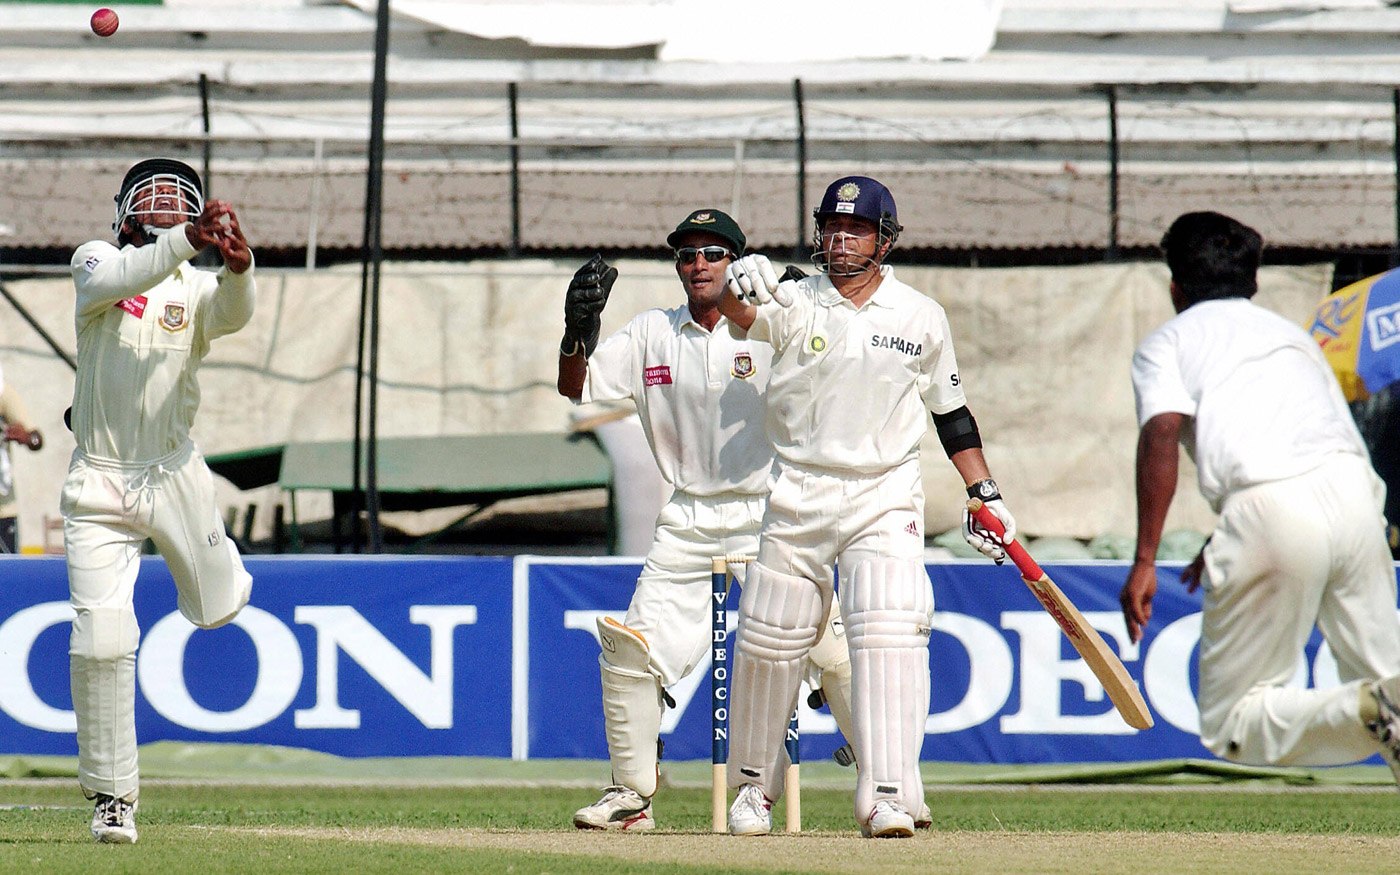 Sachin Tendulkar is dropped by Rajin Saleh at silly mid-off in Dhaka, in the innings in which he made his highest Test score, 248